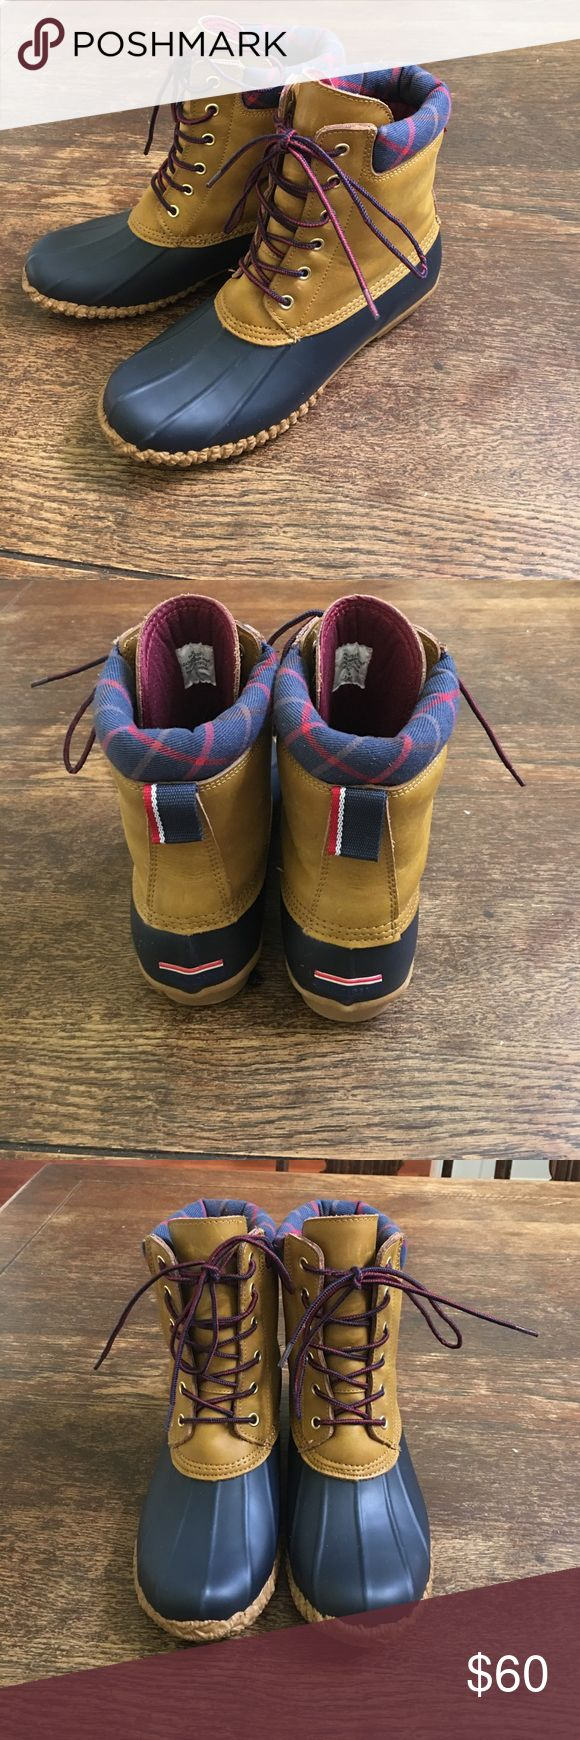 Tommy Hilfiger women's duck boots EUC. Russel rain boot in marine/blue multi color. True to size. This is a great pair of boots I just never wear. Tommy Hilfiger Shoes Winter & Rain Boots